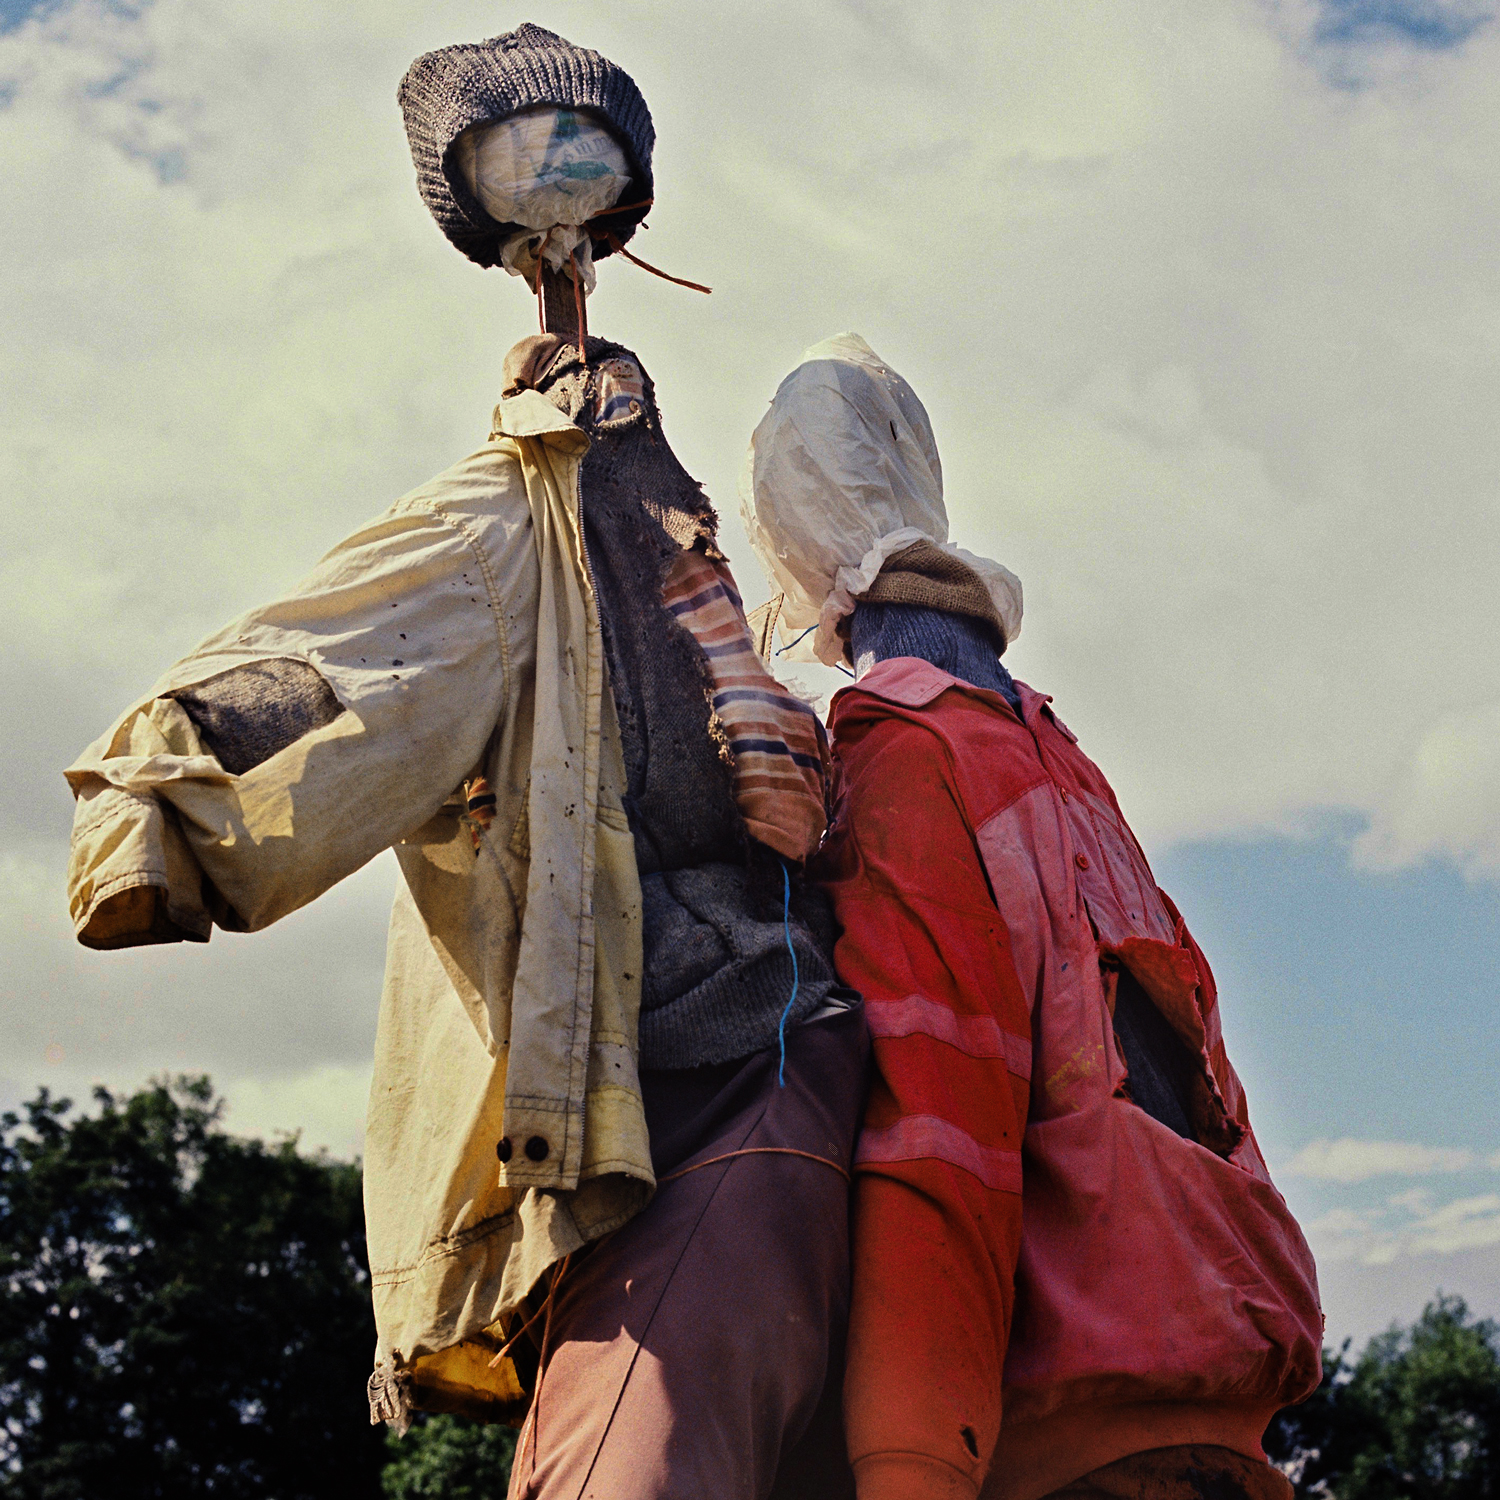 'Ullages' by Eagulls, album review by Adam Williams. 'Ullages' comes out on May 13th on Partisan